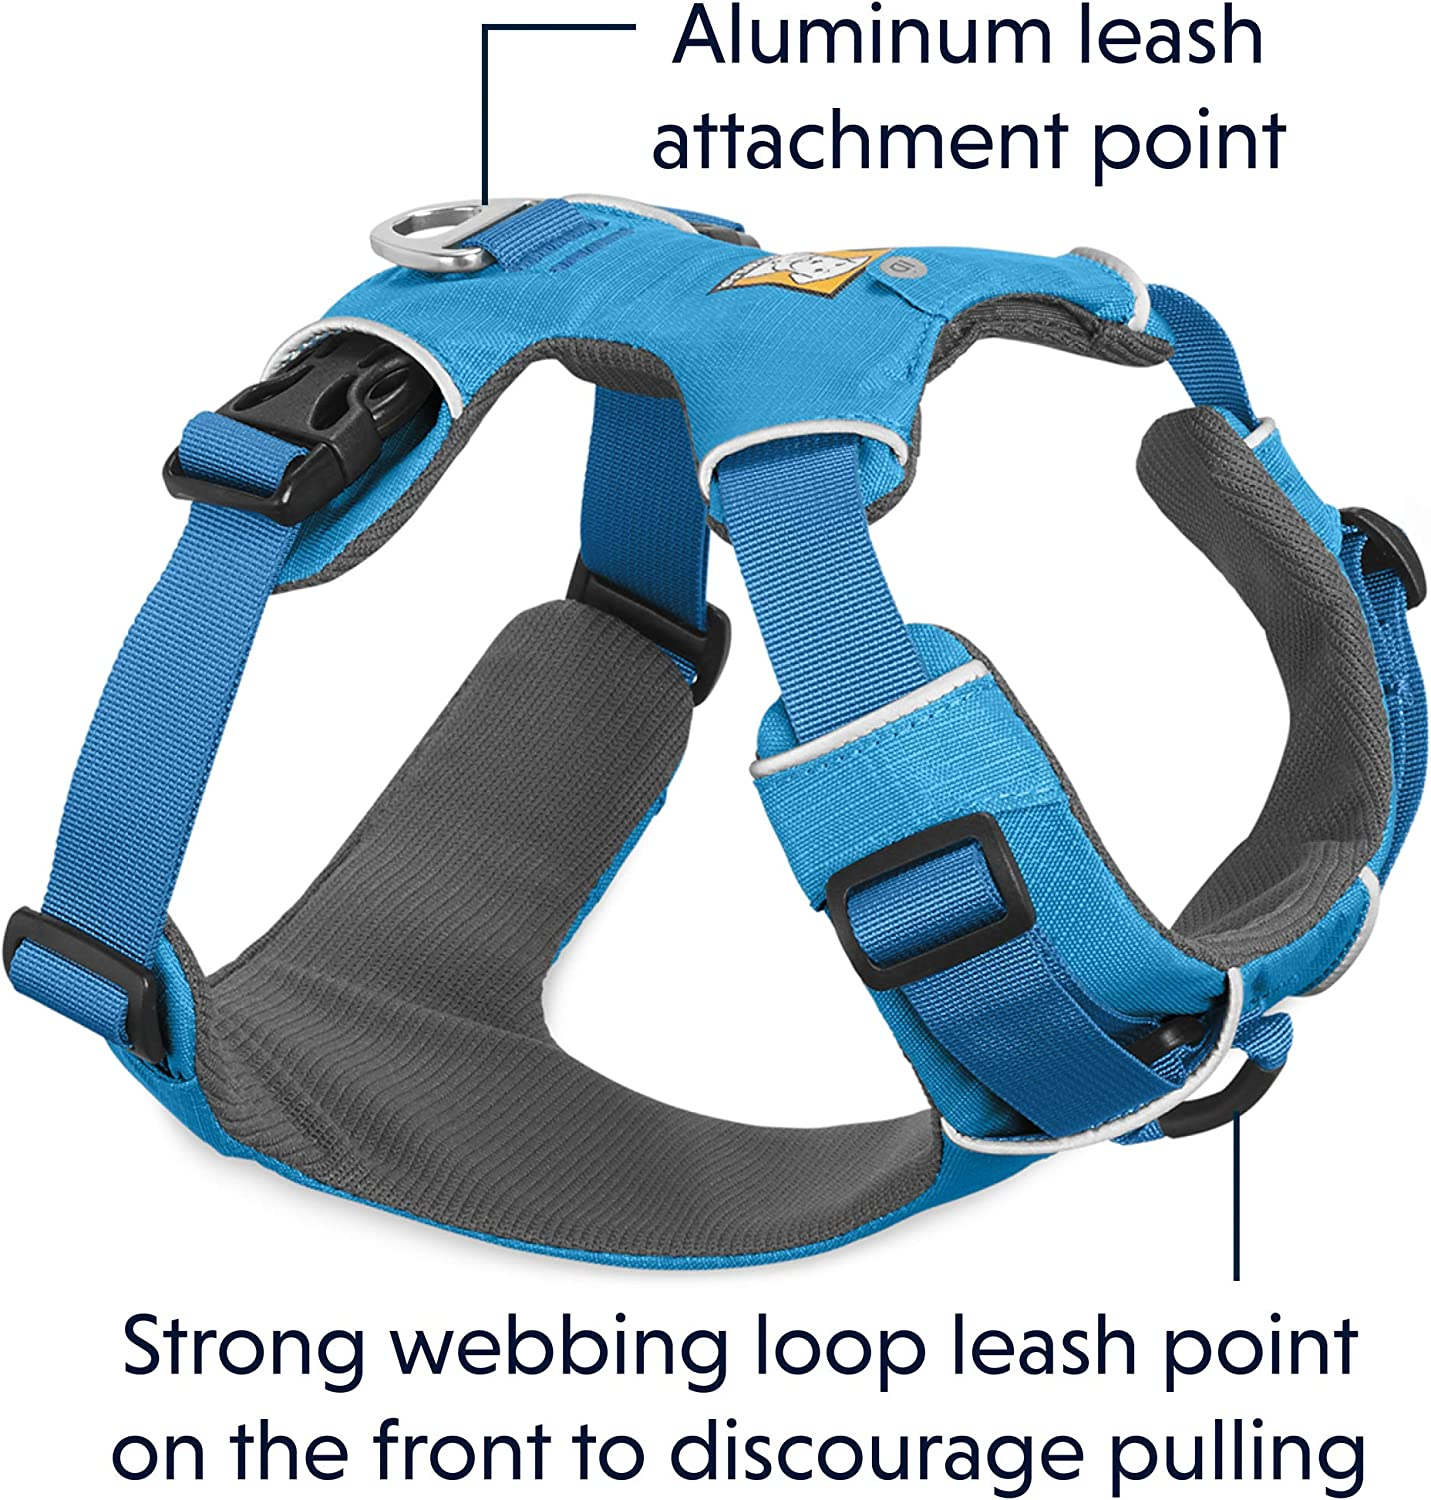 Trail Running All-Day Wear Everyday No Pull Dog Harness with Front Clip Front Range RUFFWEAR Walking Hiking